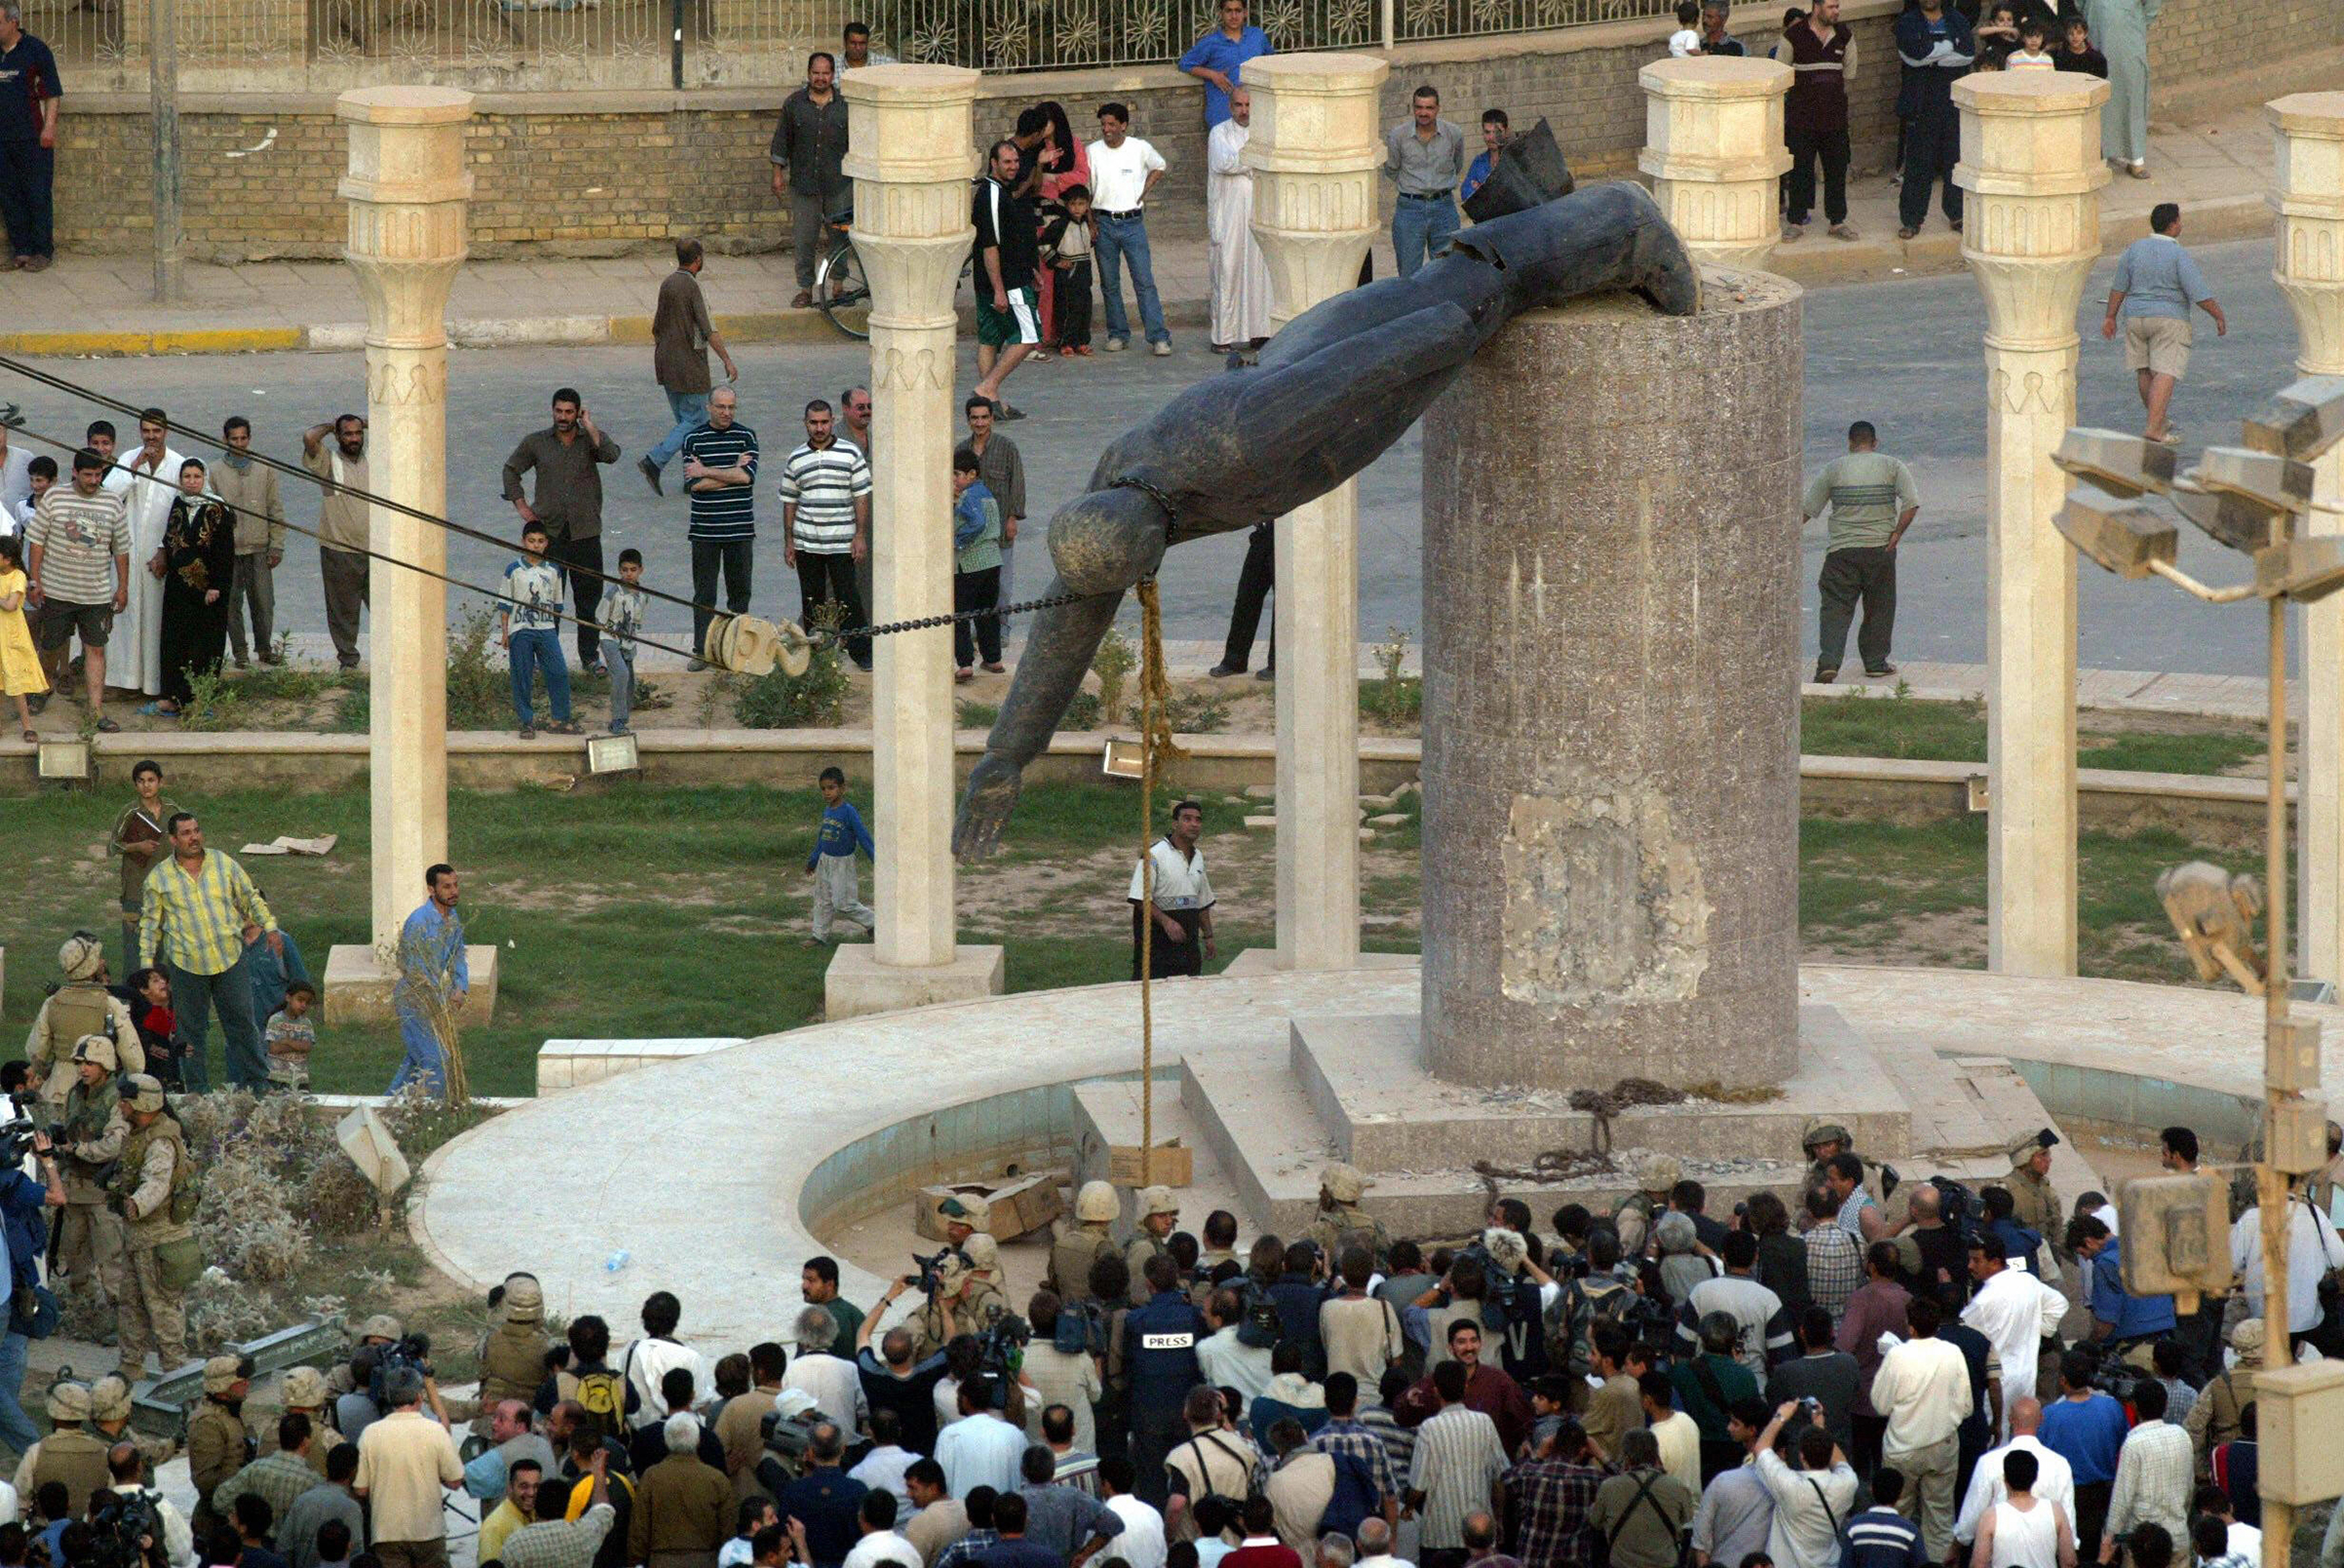 Iraqis watch a statue of Saddam Hussein falling in Baghdad on April 9, 20013. The ousted dictator was hanged in December 2006.